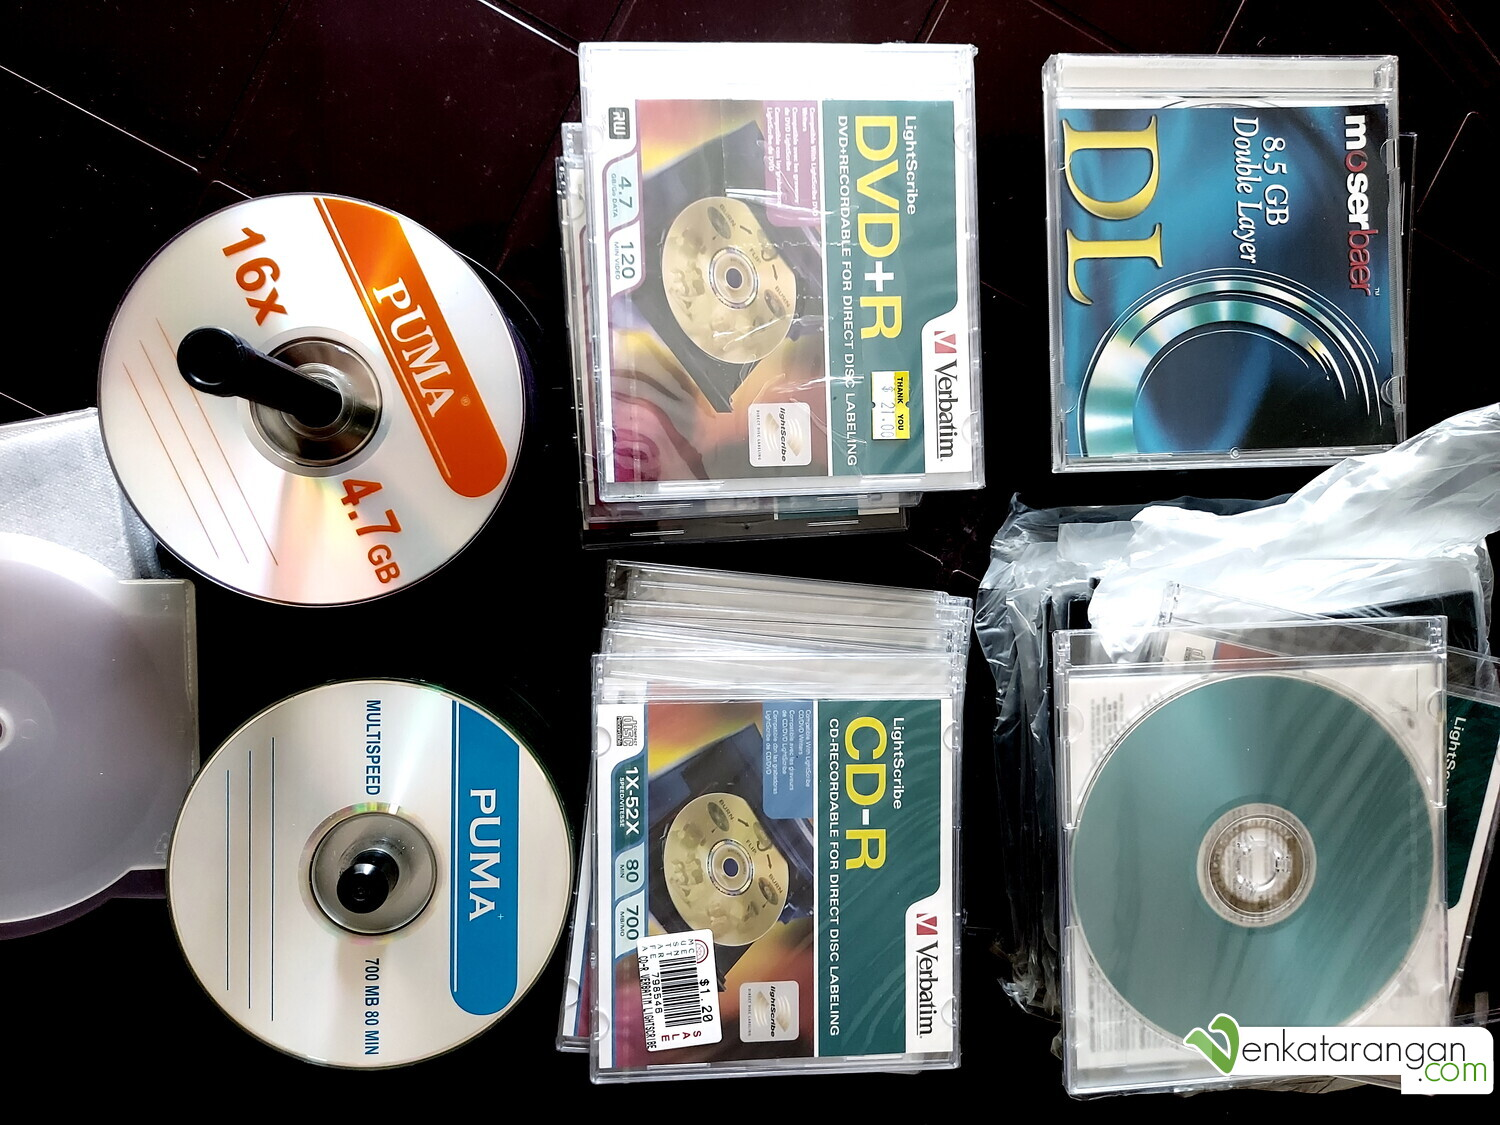 Blank Compact Discs and DVDs - Optical Discs